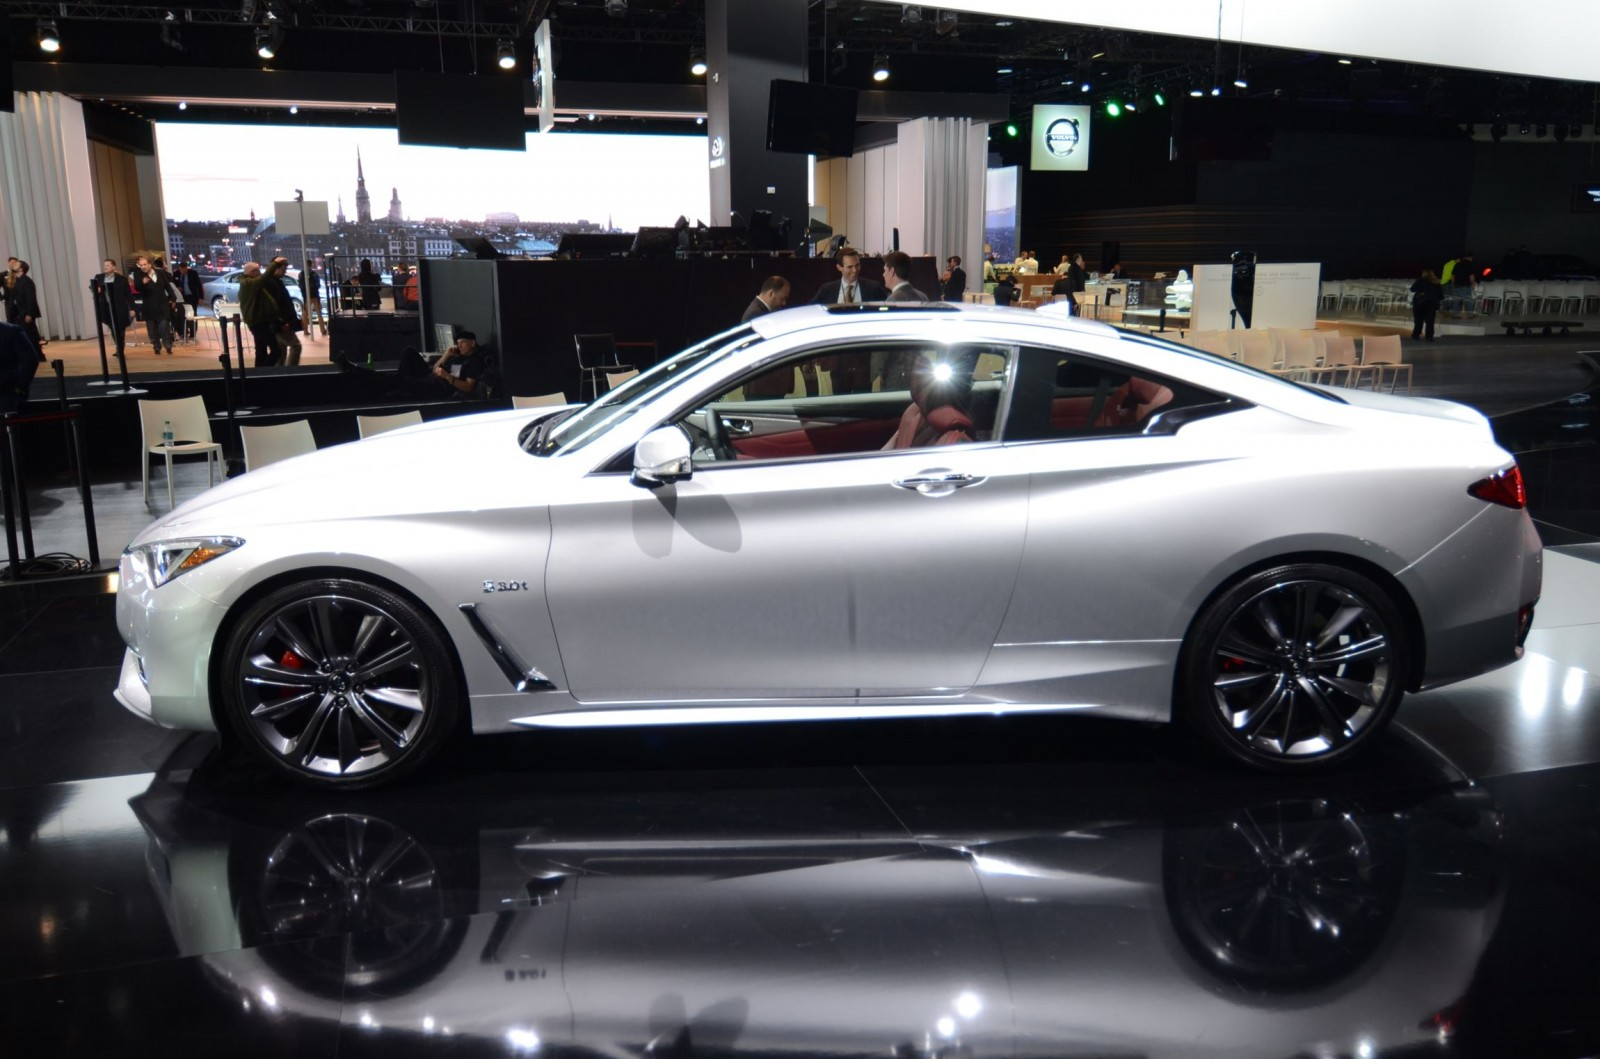 400hp 2017 infiniti q60 3 engines and sexy design swagger to top 435i. Black Bedroom Furniture Sets. Home Design Ideas